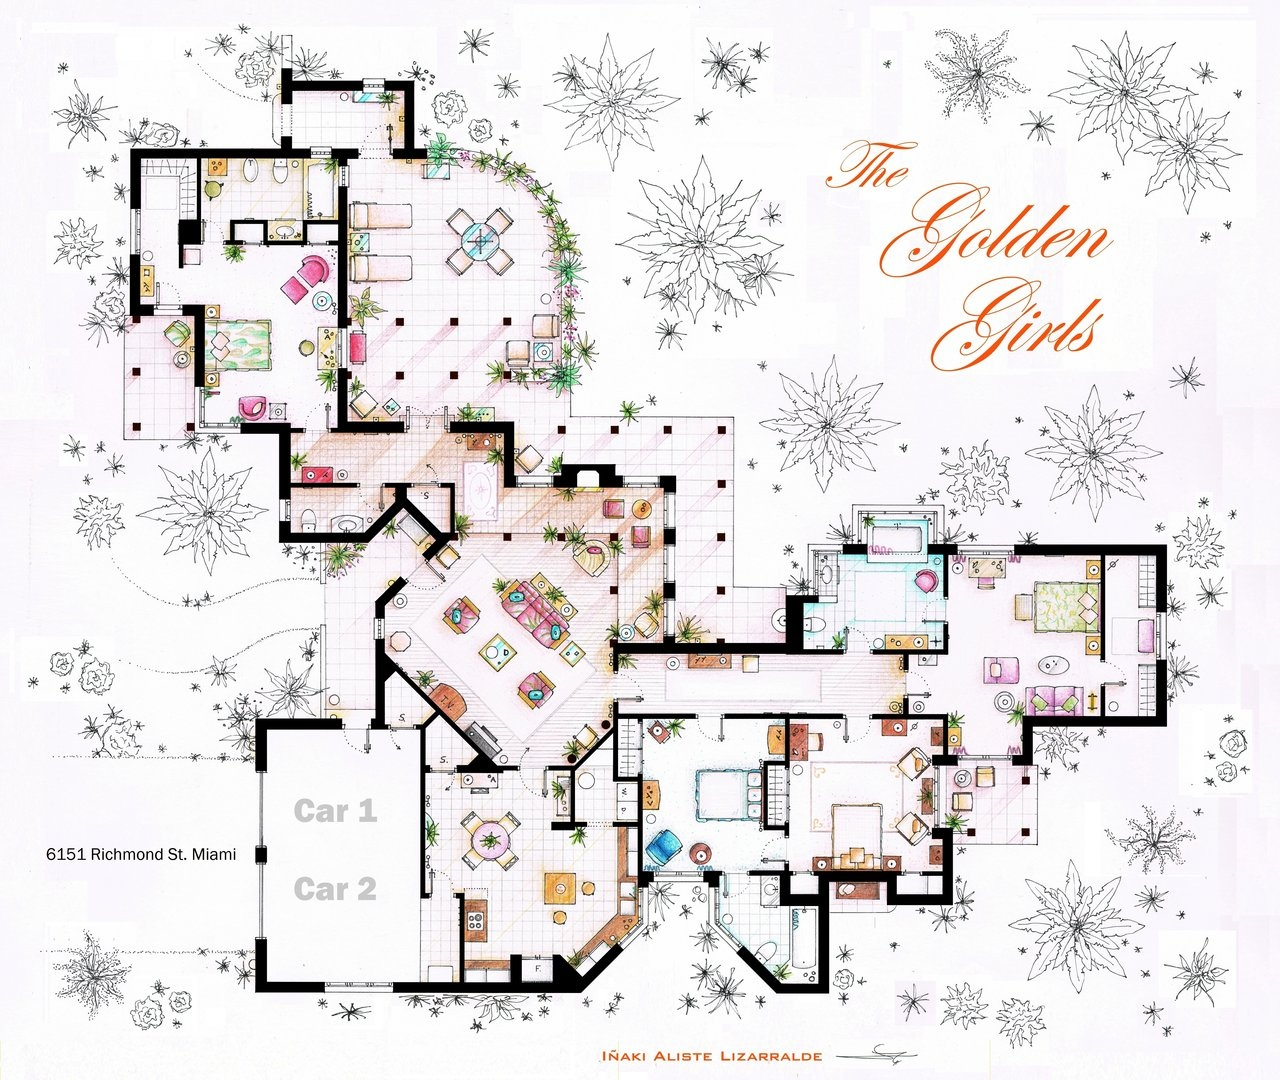 the golden girls house